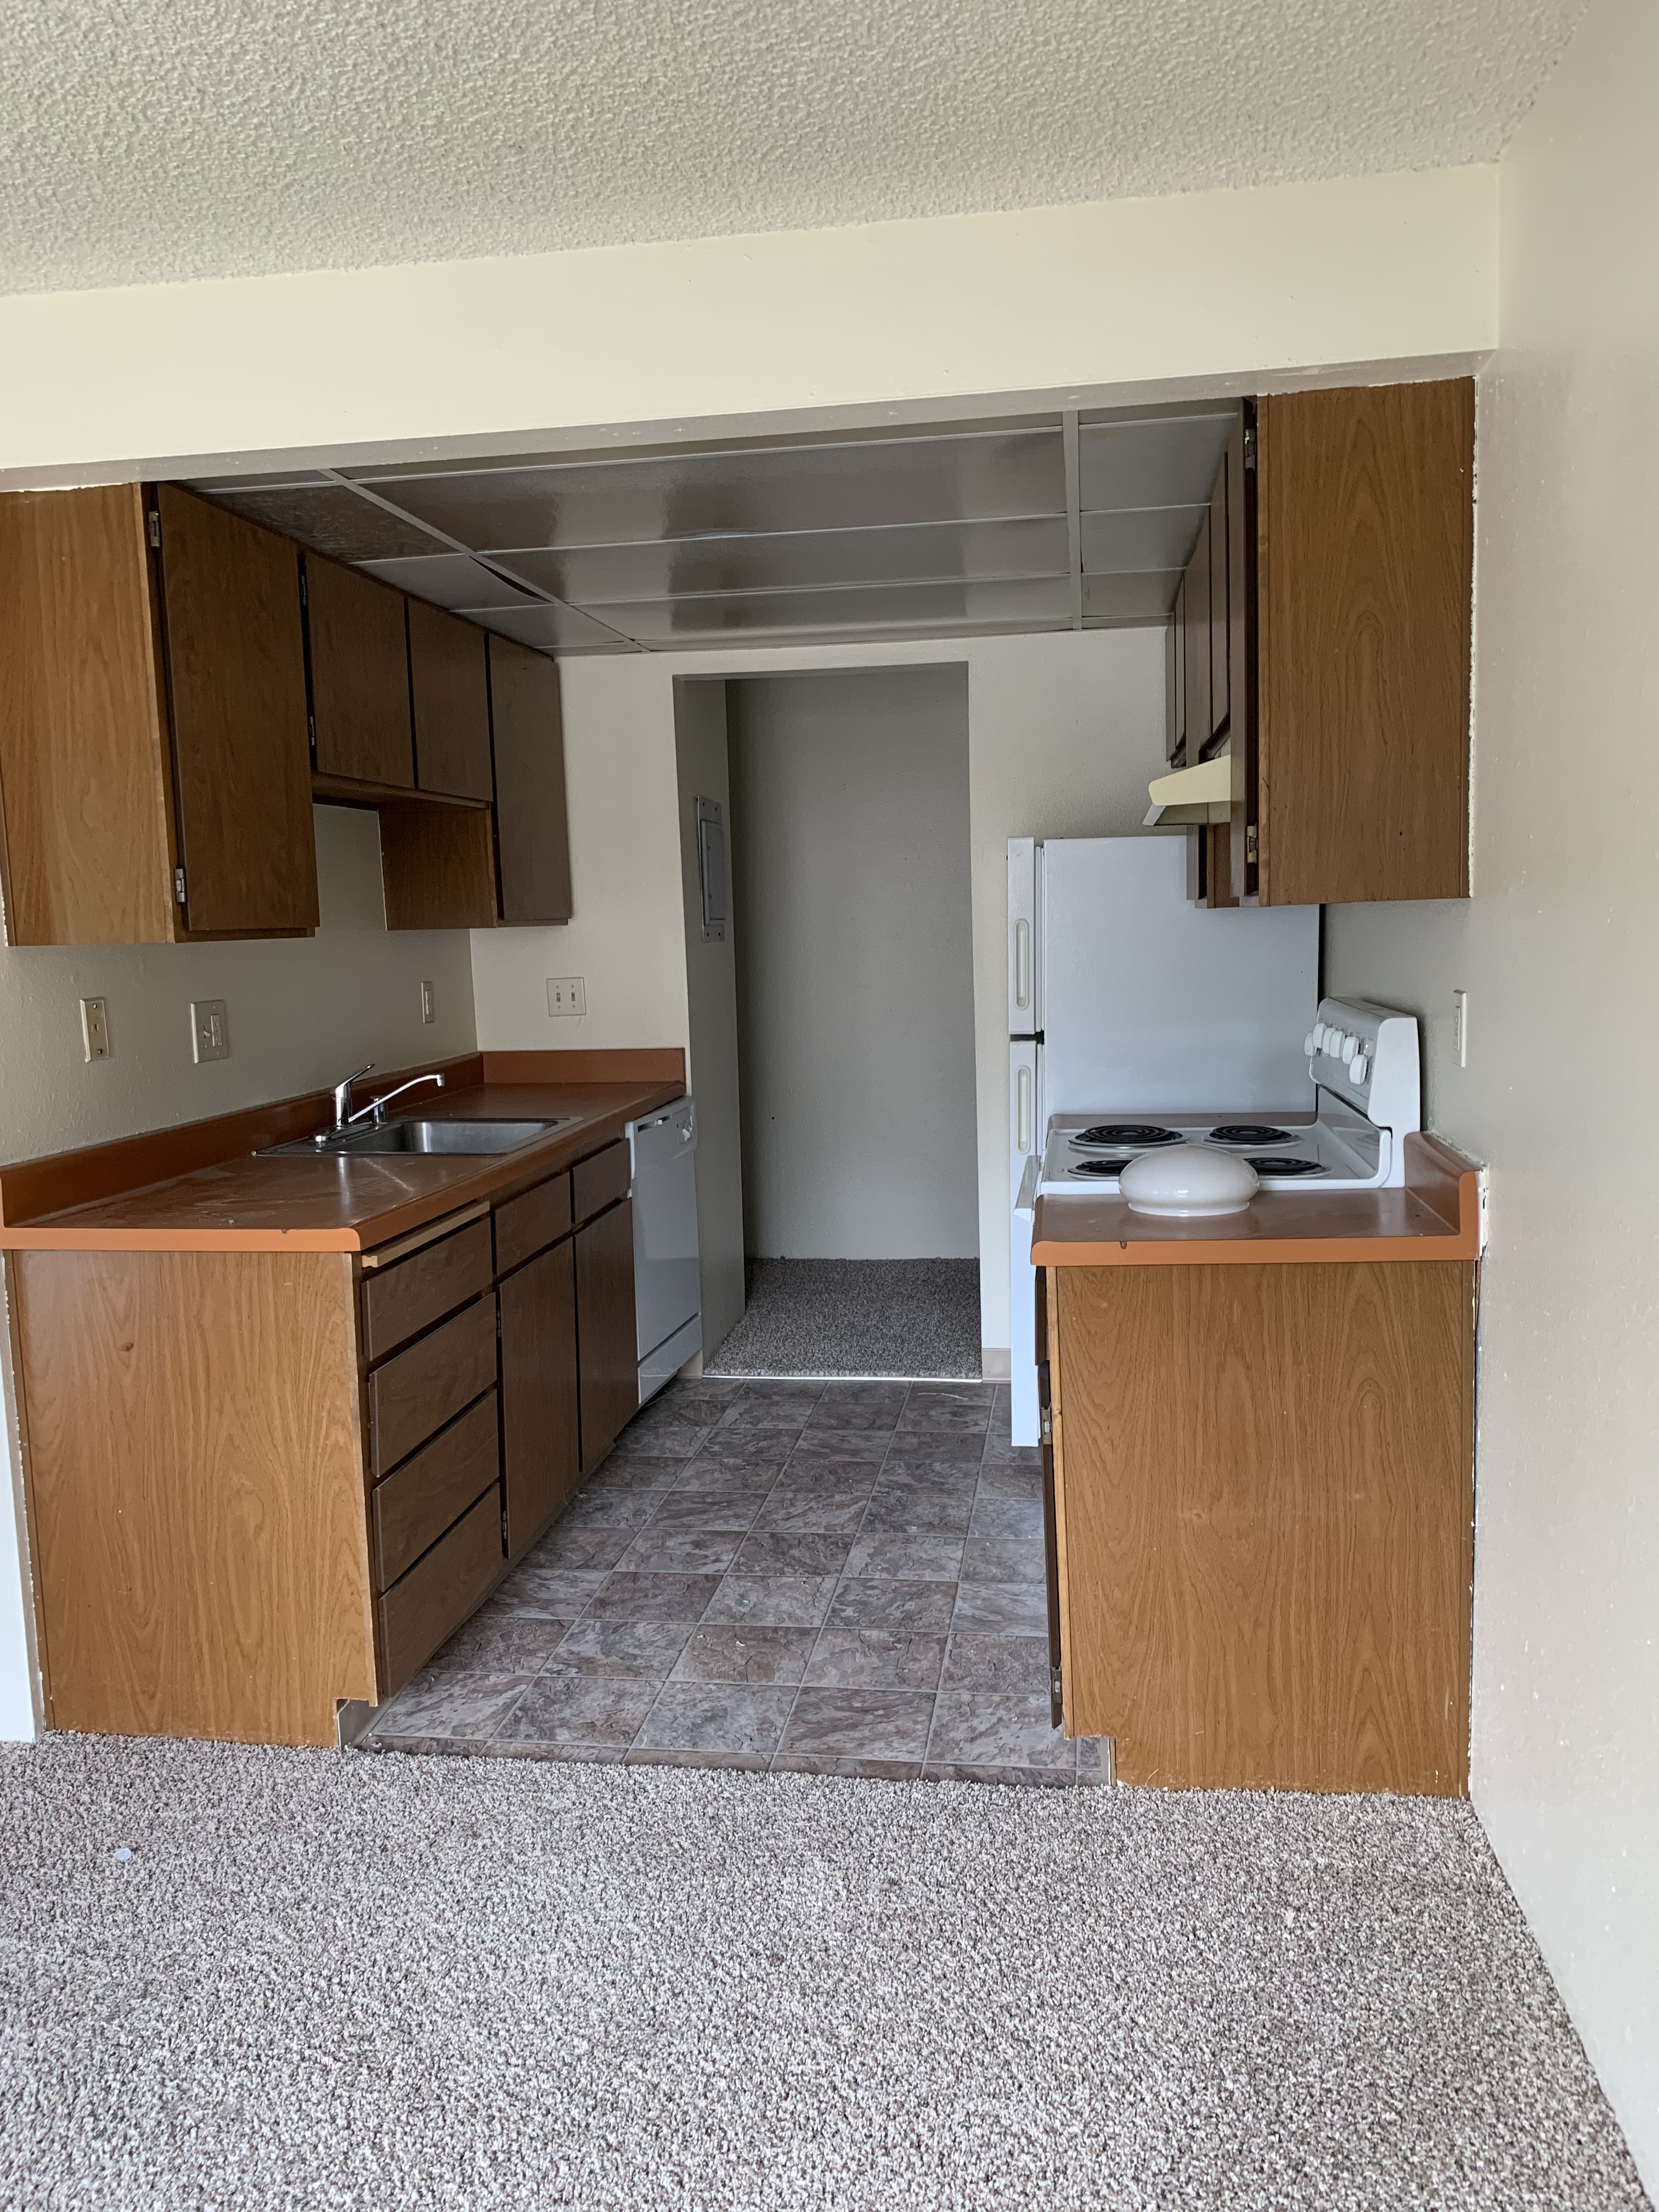 Apartments Near Bastyr Kingsgate Meadows for Bastyr University Students in Kenmore, WA